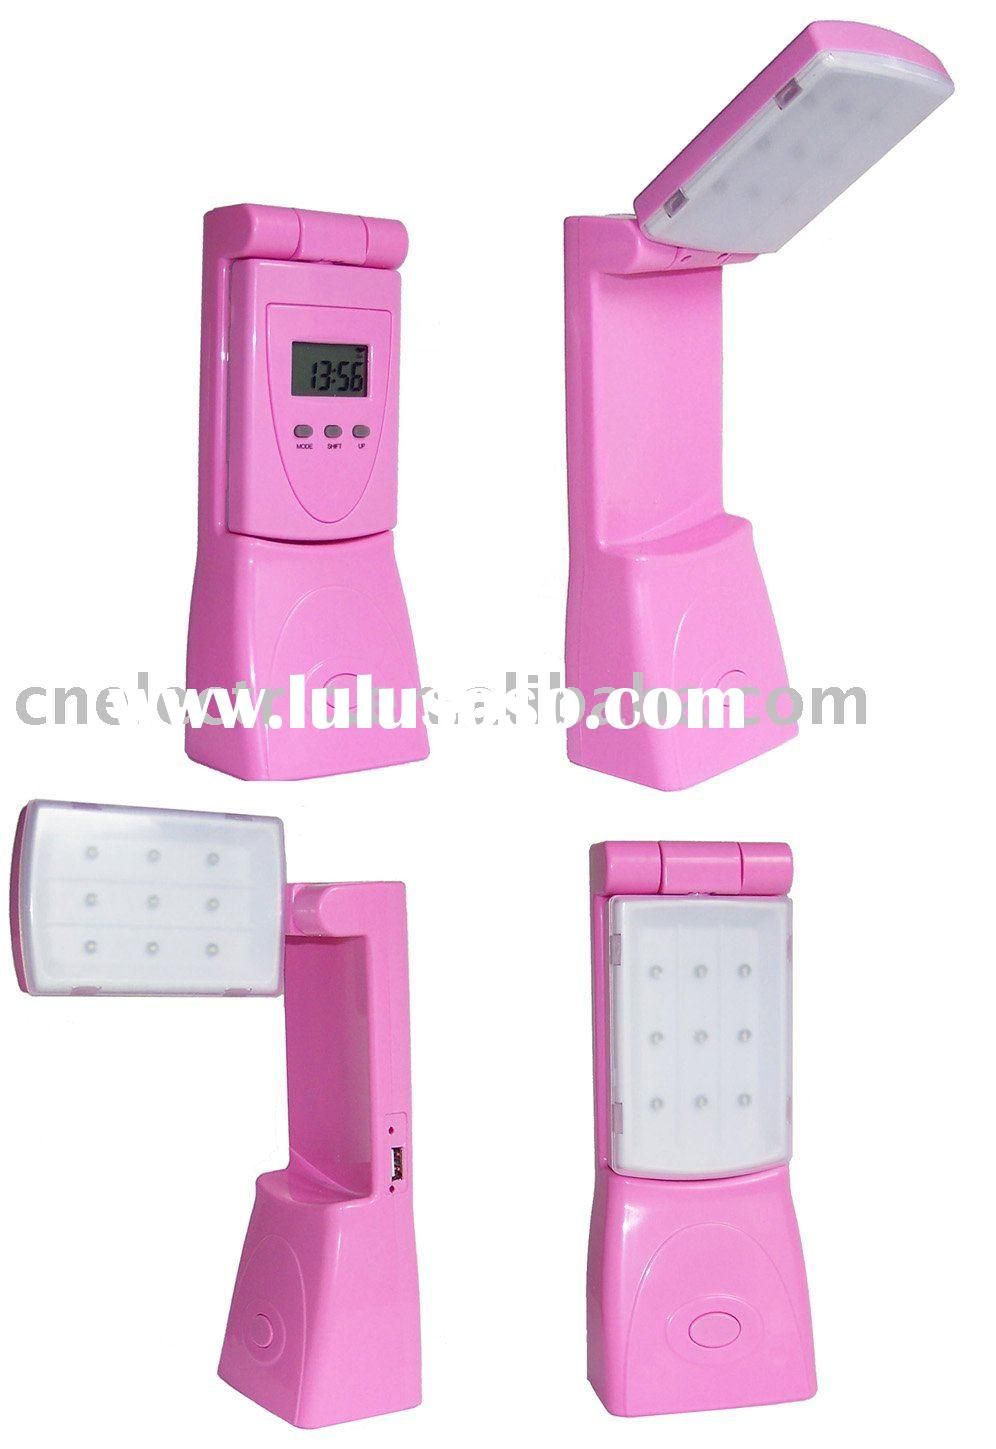 LED Reading Light with Clock table/desk lamp